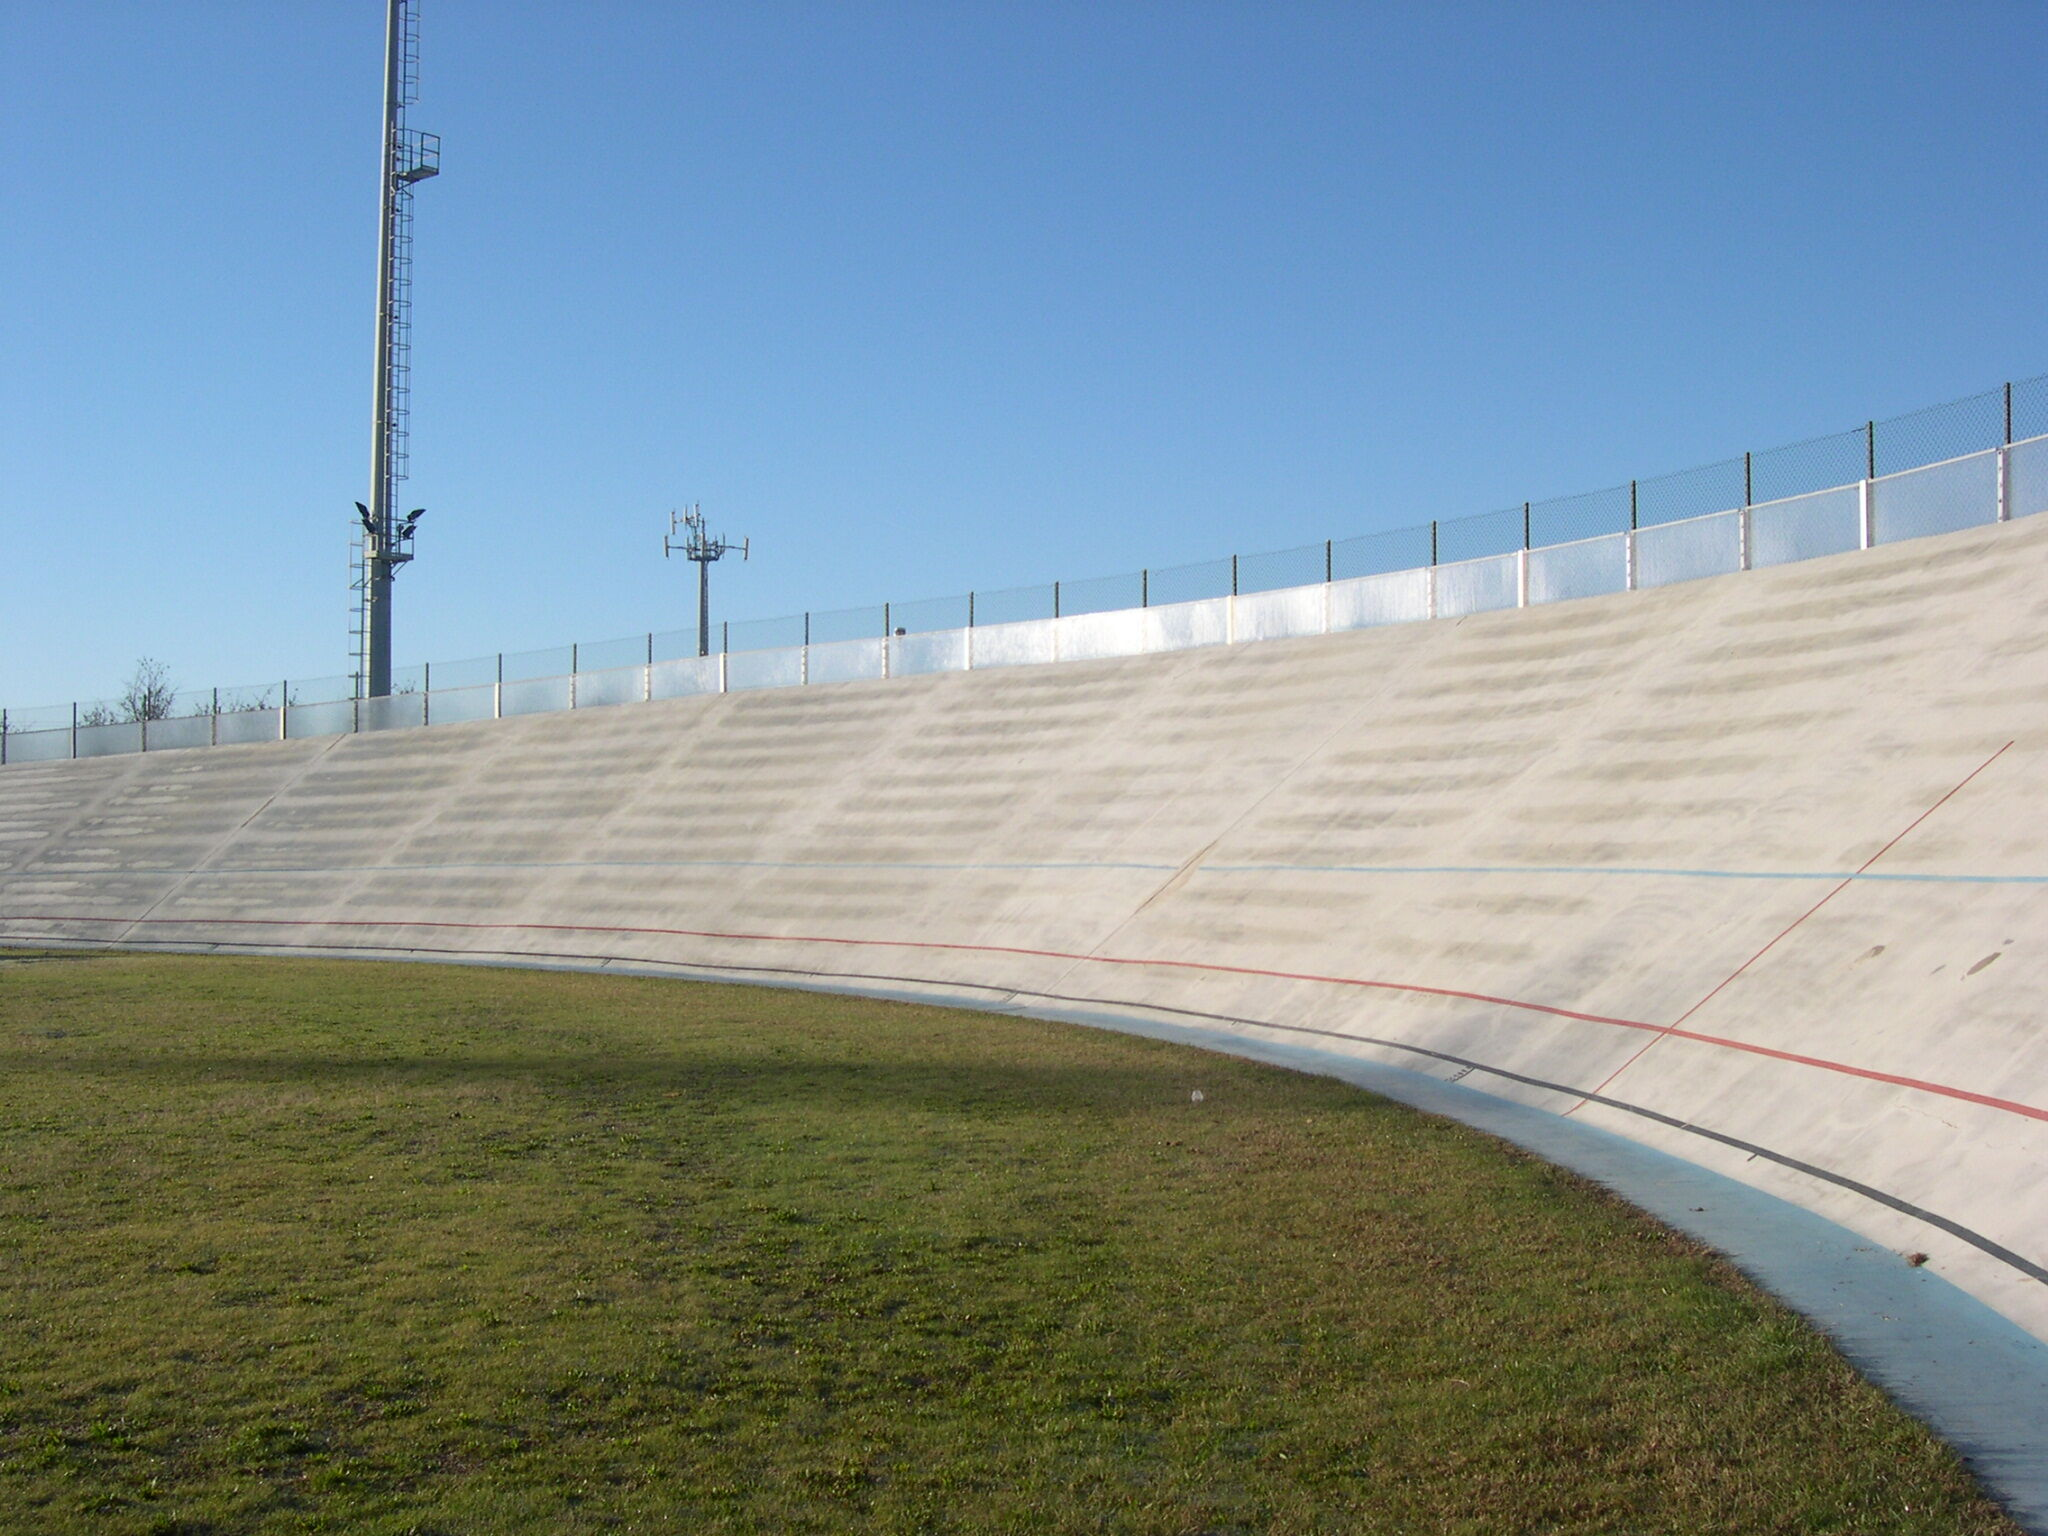 Existing track